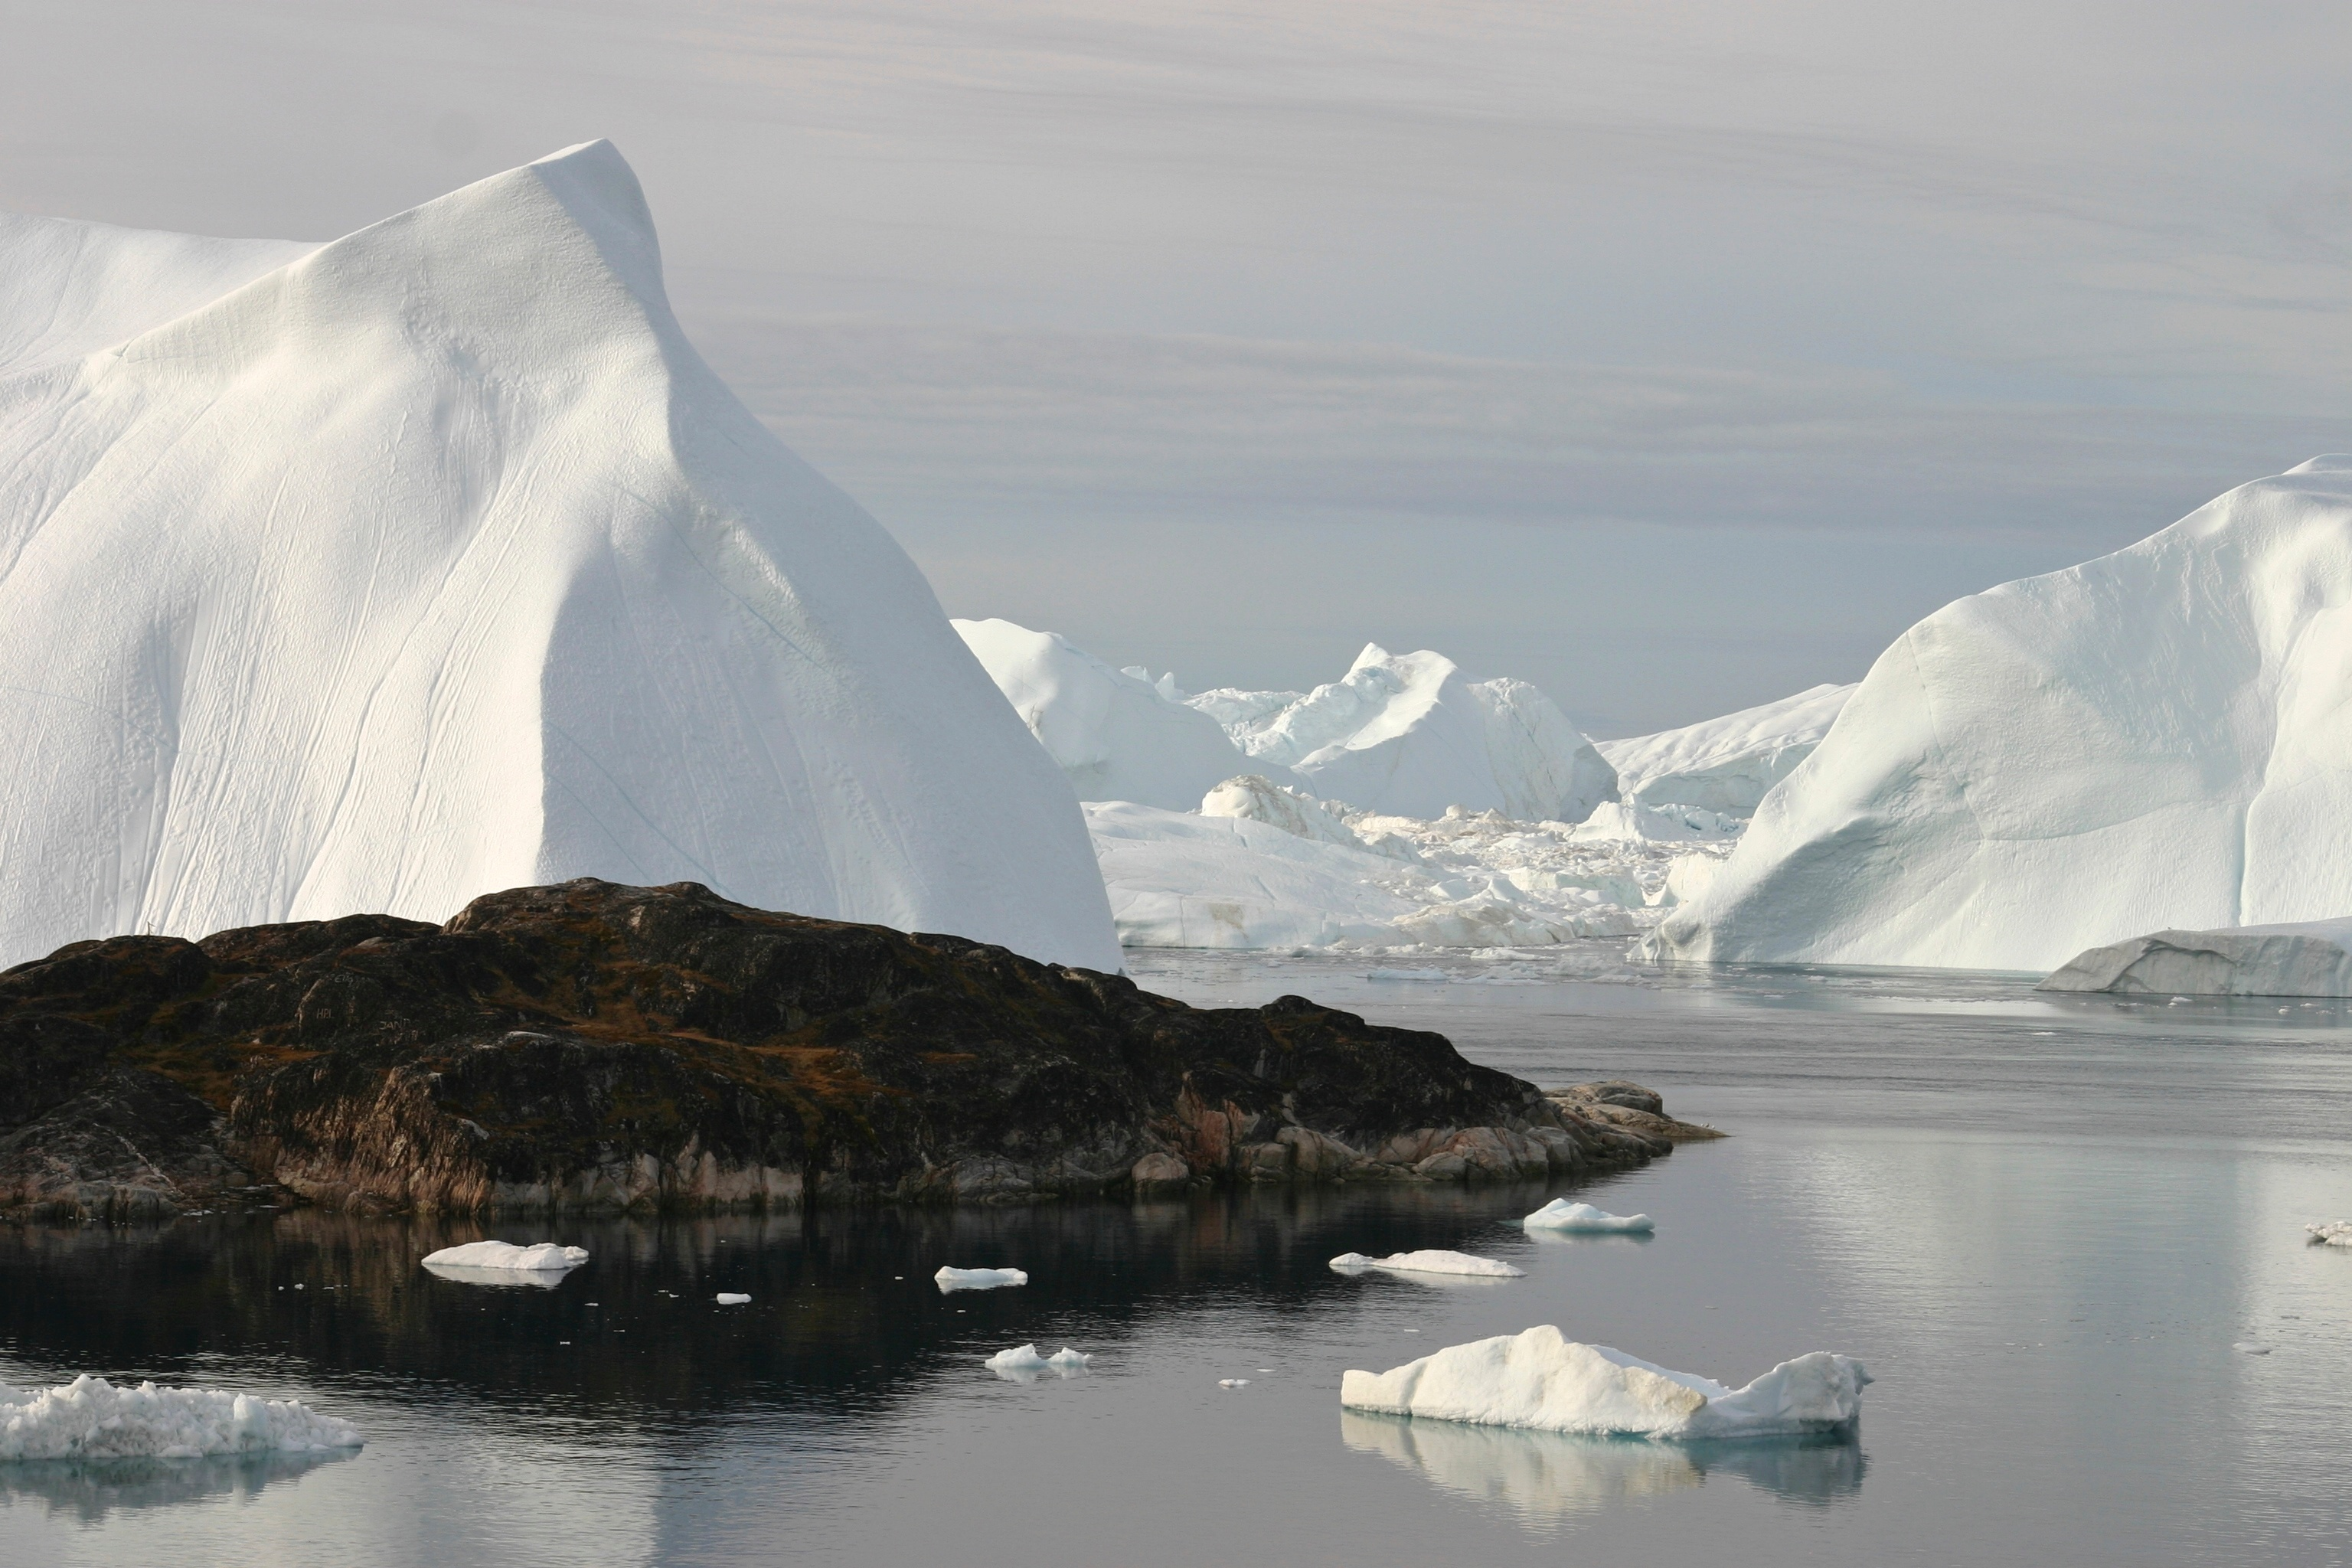 Greenland's wind, salt water and weather combine to shape the ice into fantastic sculptures.